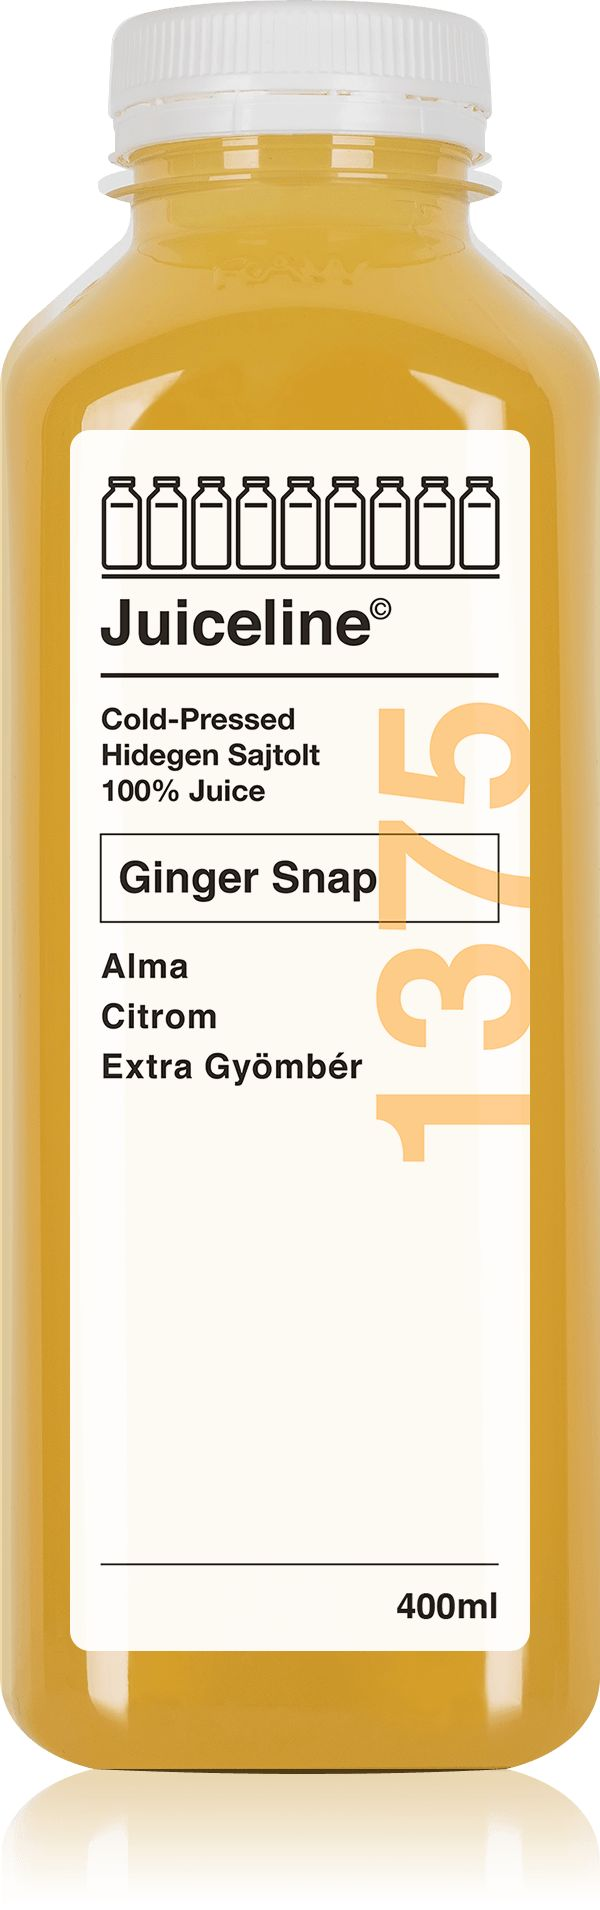 1375 Ginger Snap 400ml